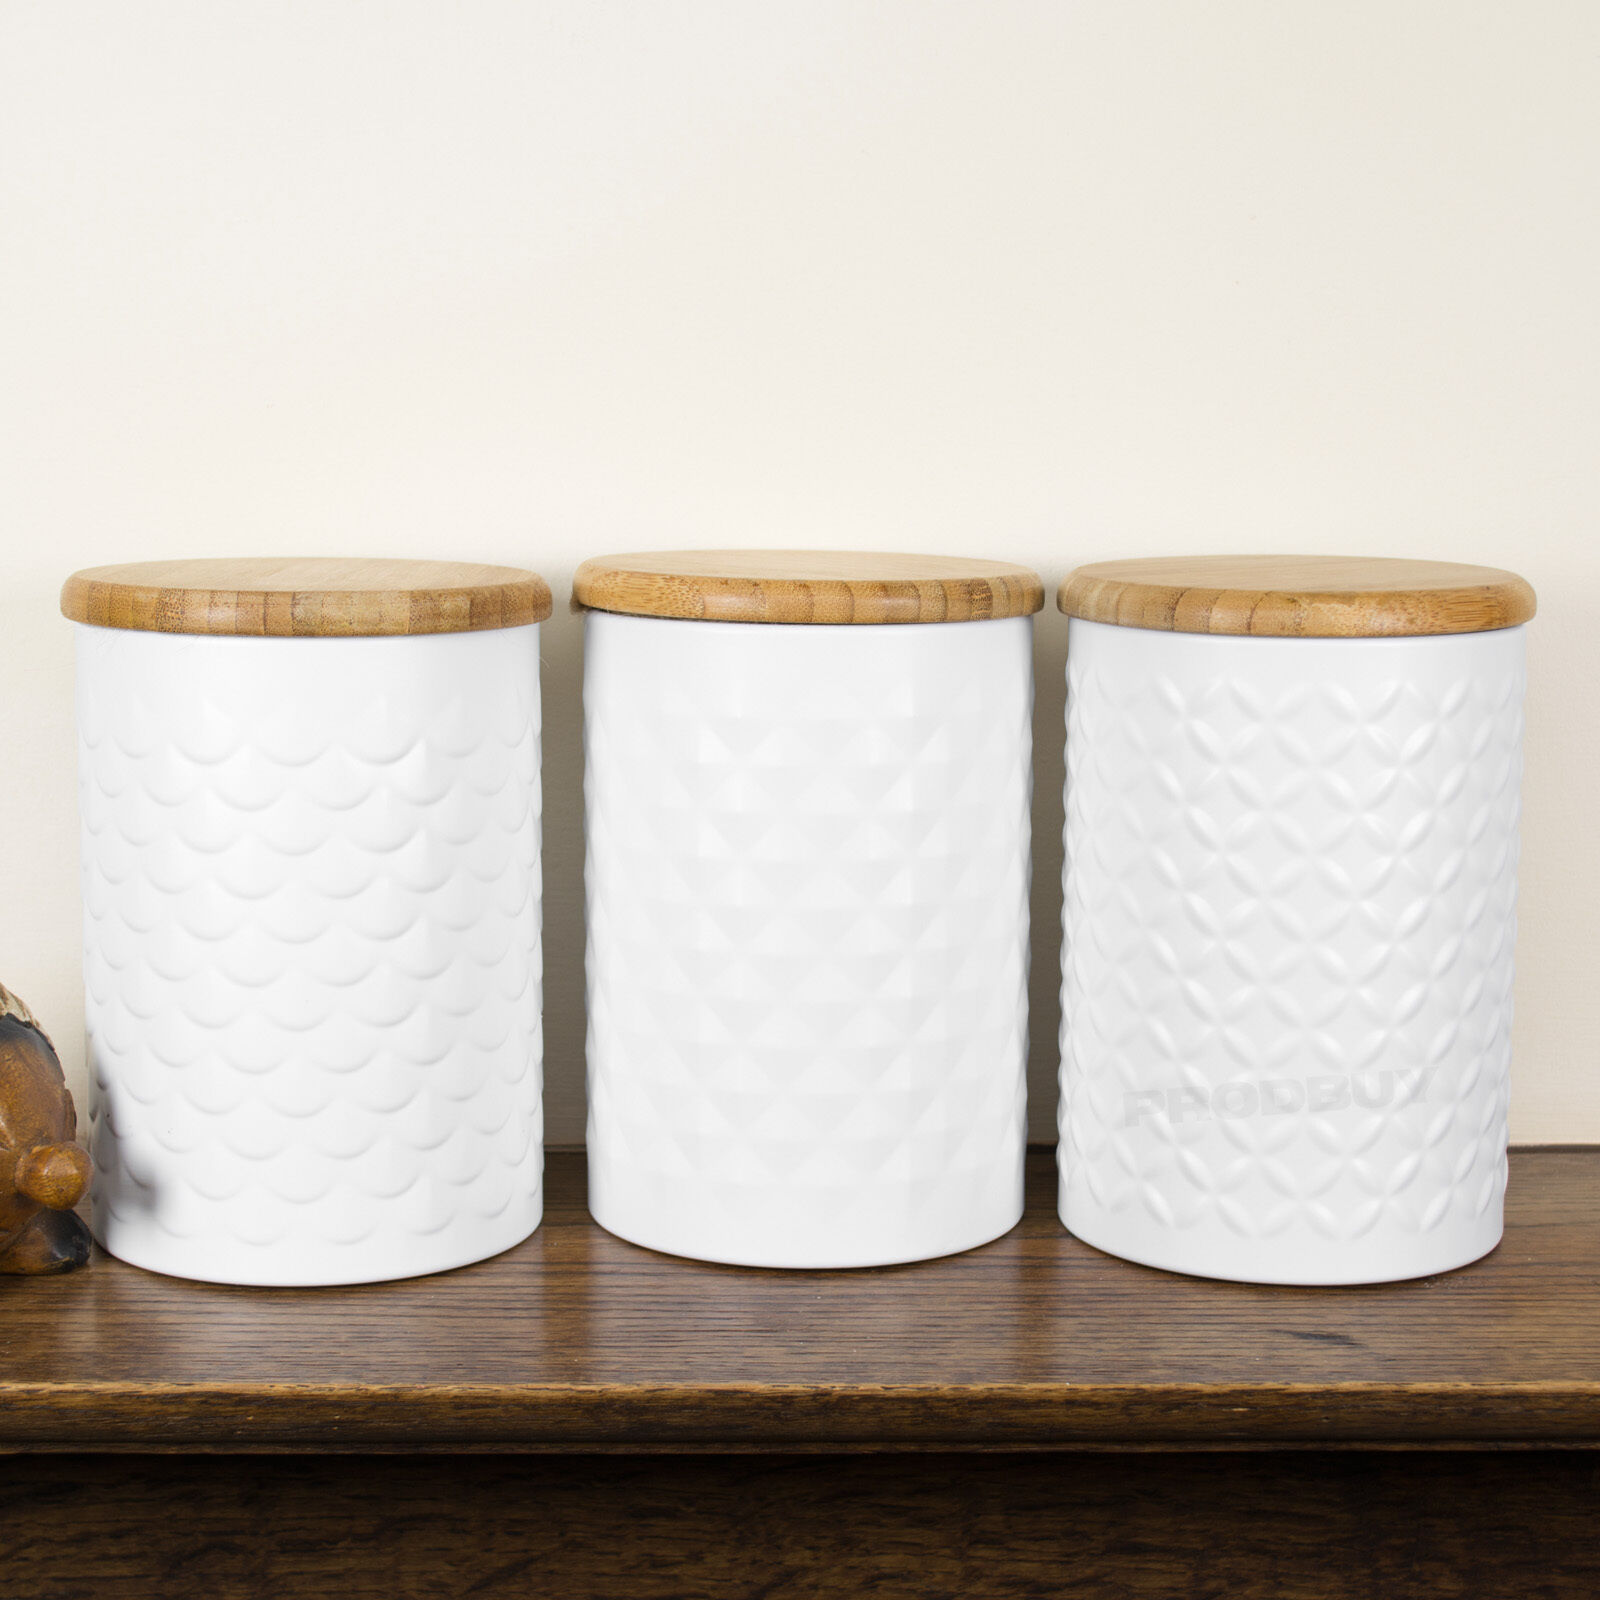 Tea Coffee Sugar Canisters White Typhoon Imprima Food Kitchen Storage Tins Jars 1 Of 1only 3 Available